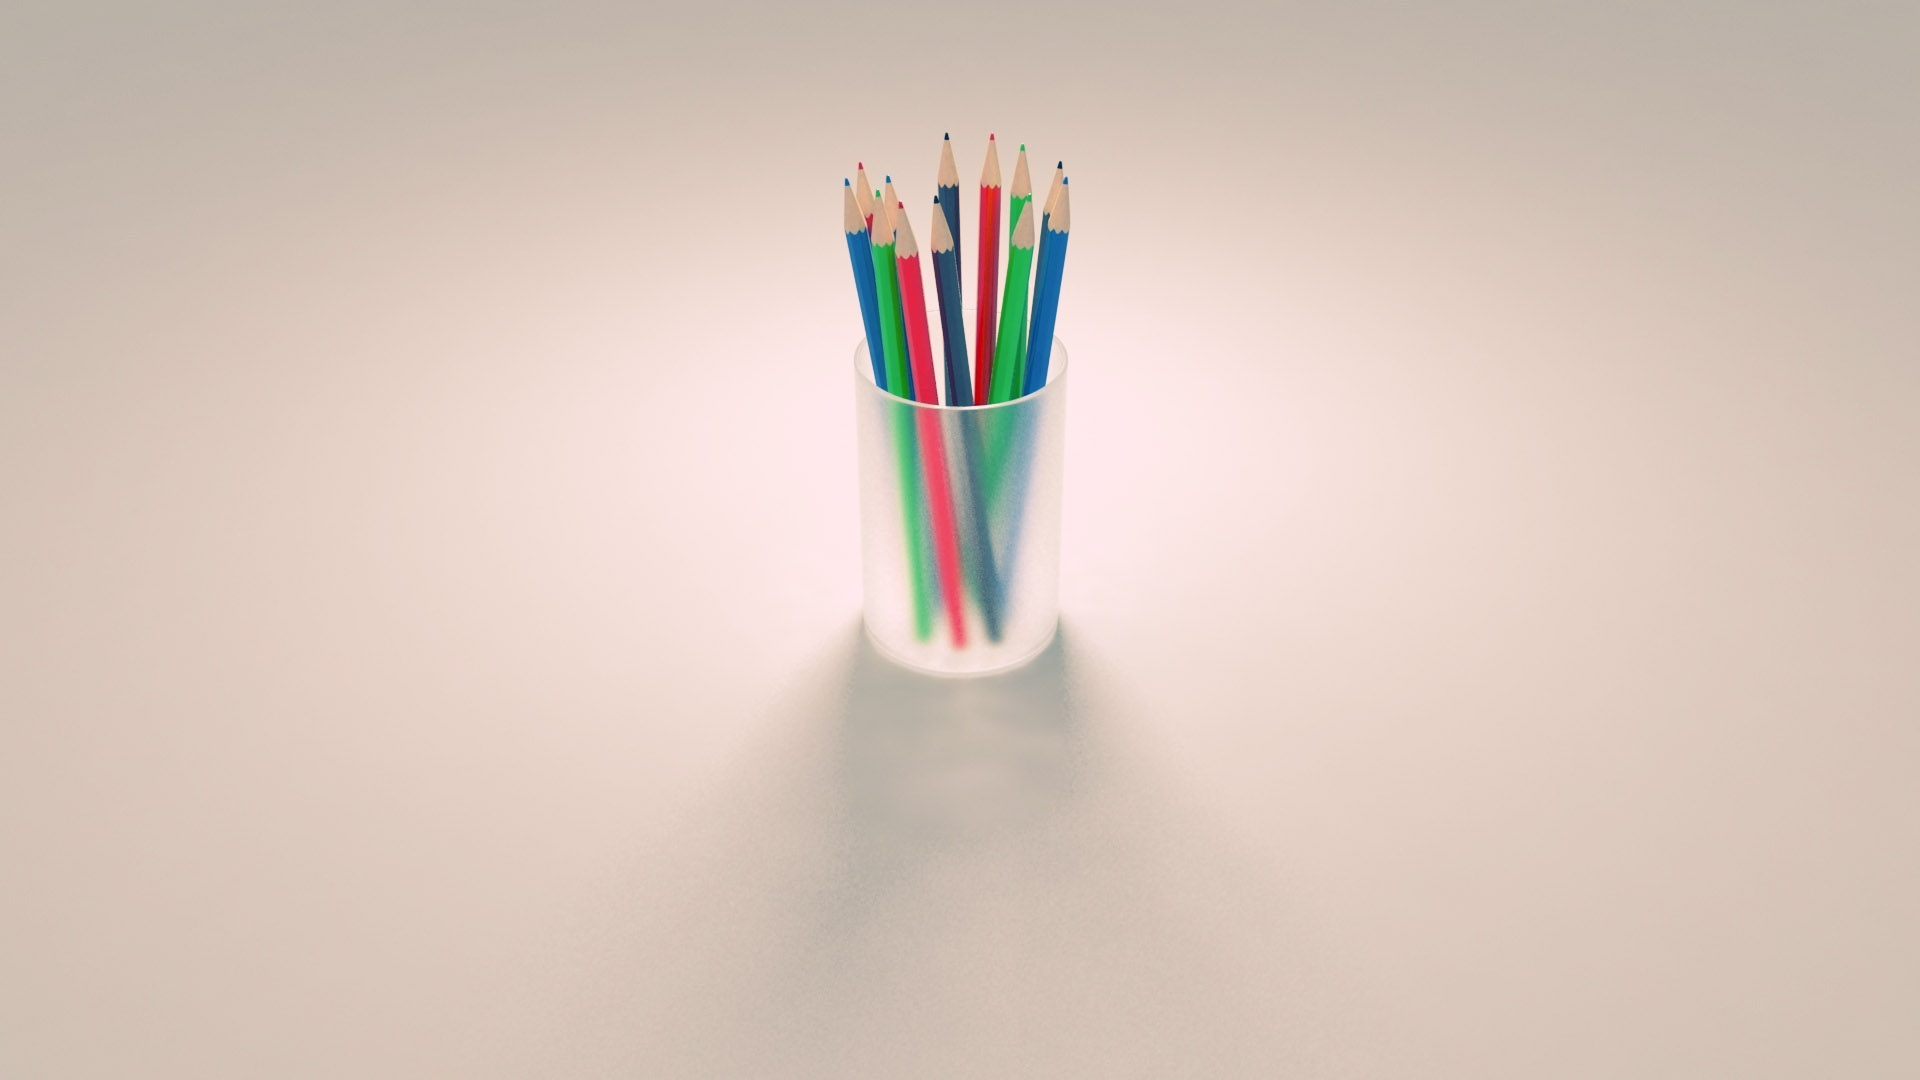 colored pencils wallpaper 40943